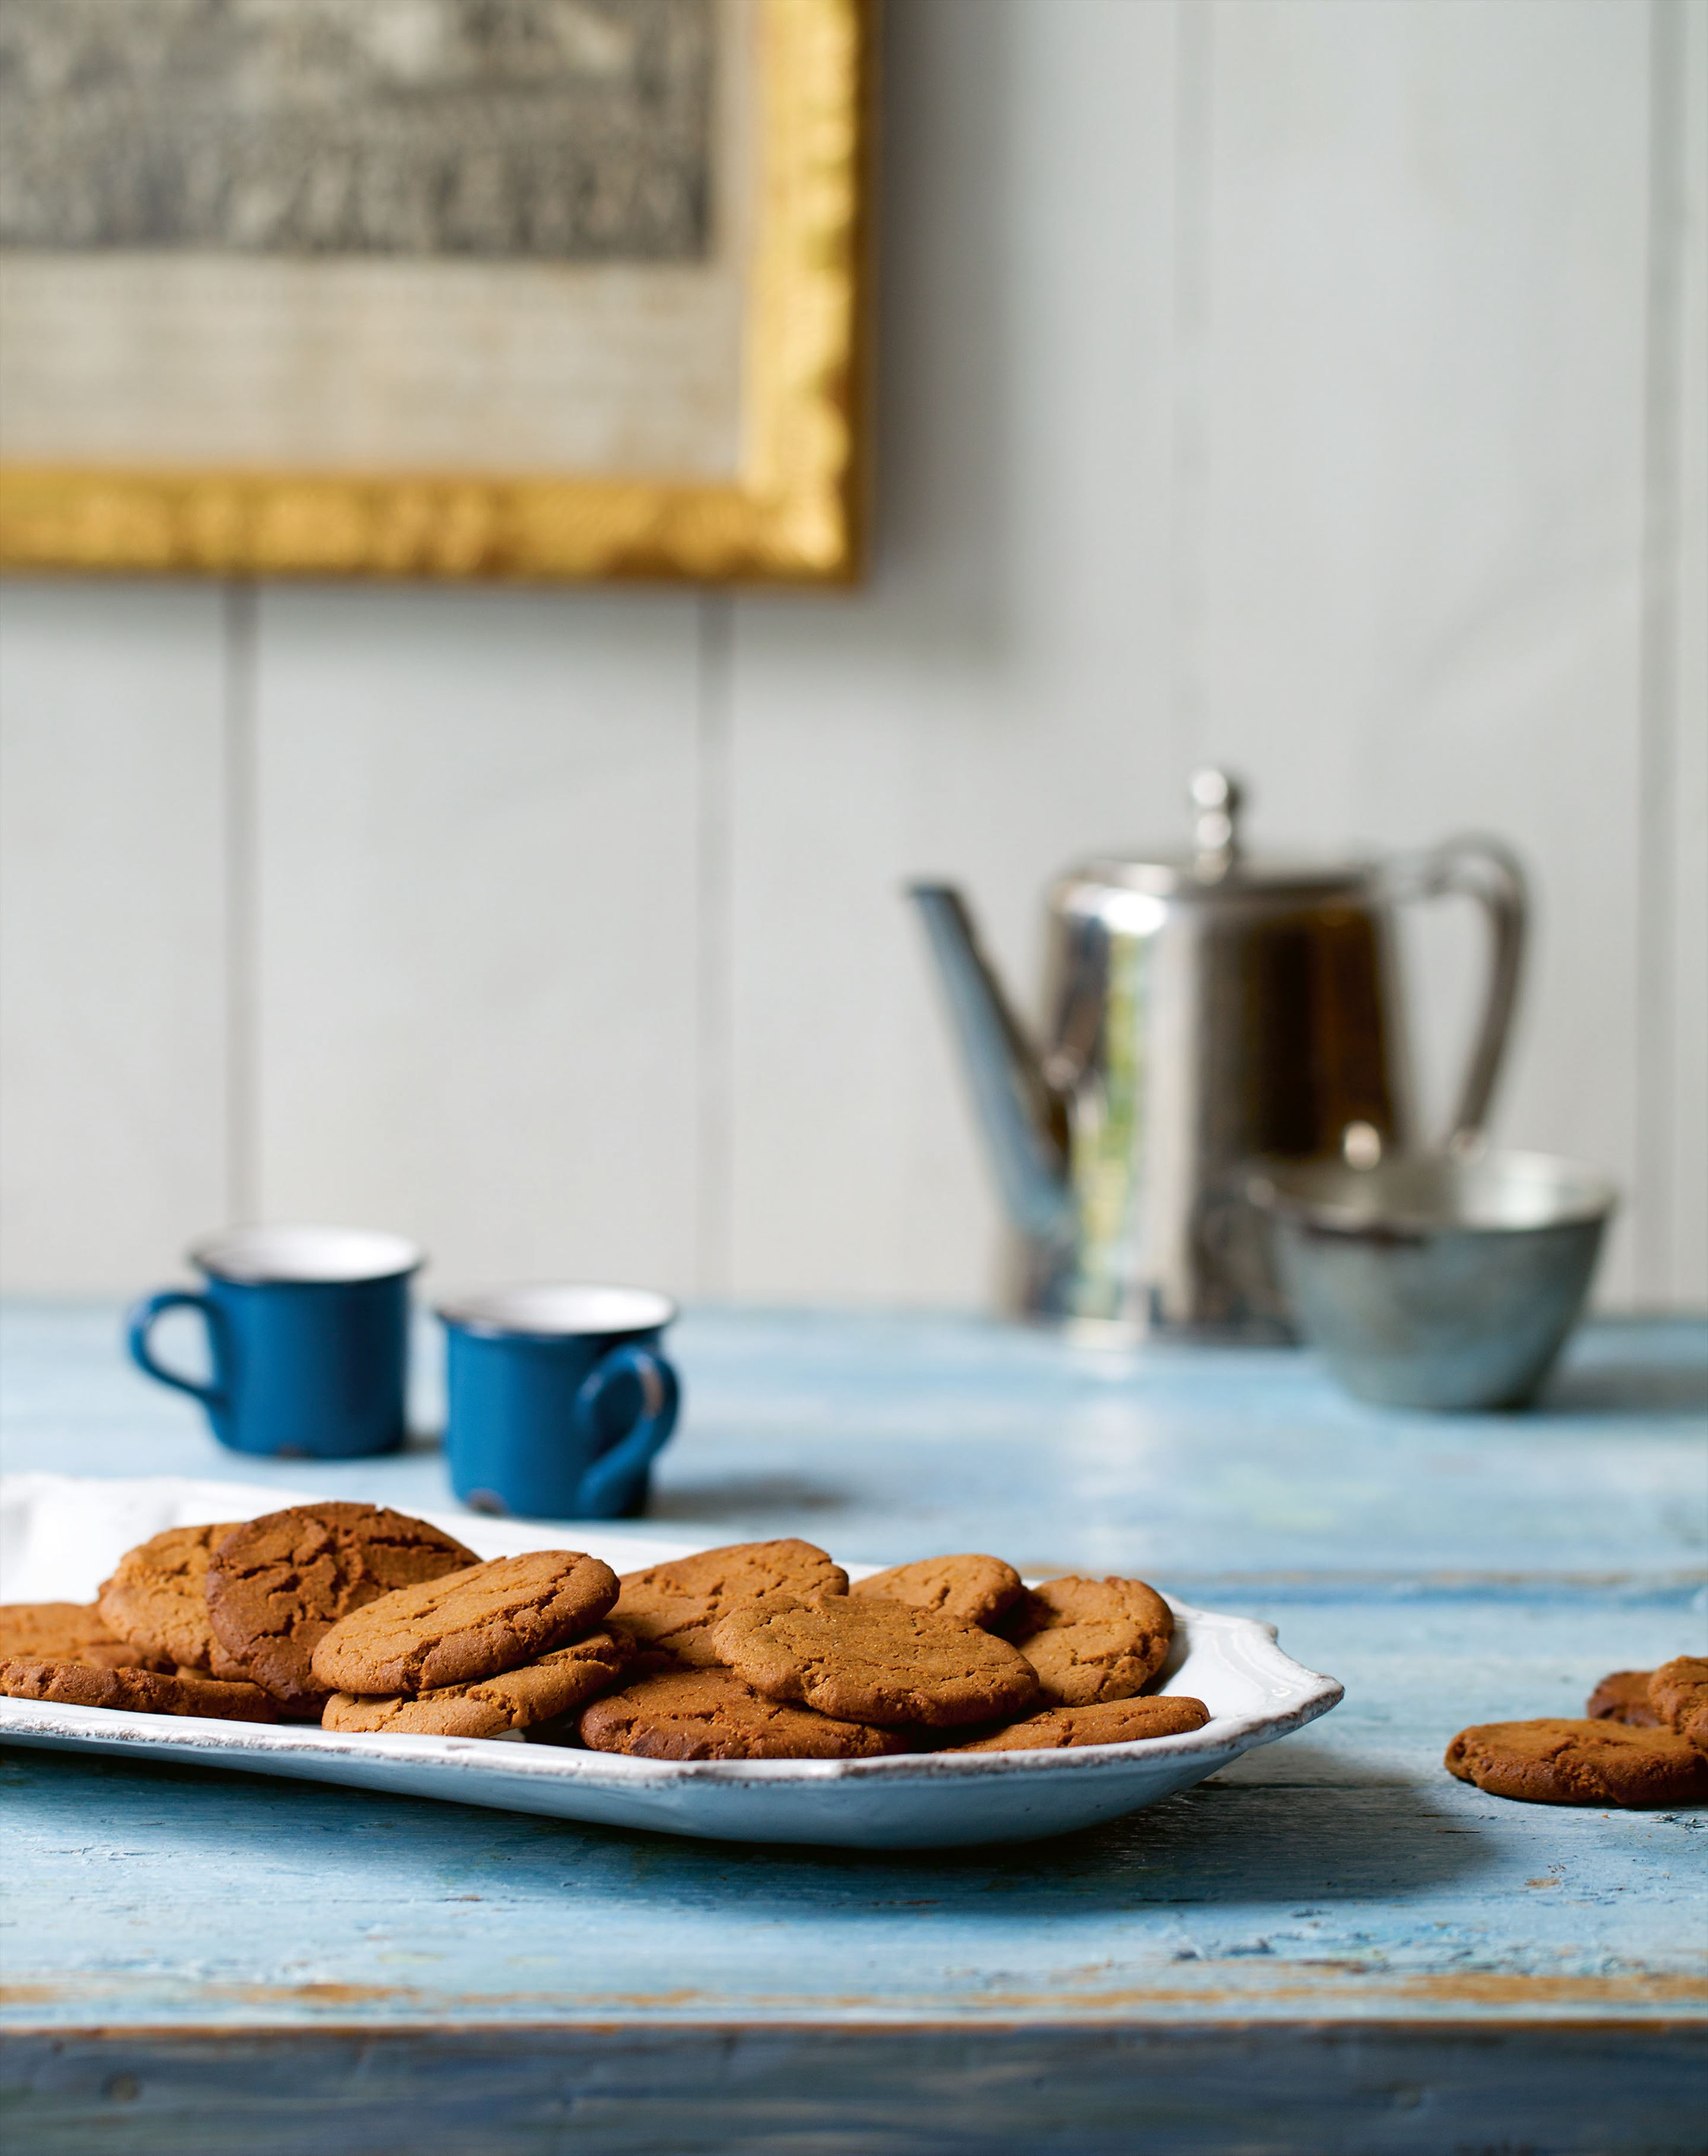 Coffee and cardamom biscuits